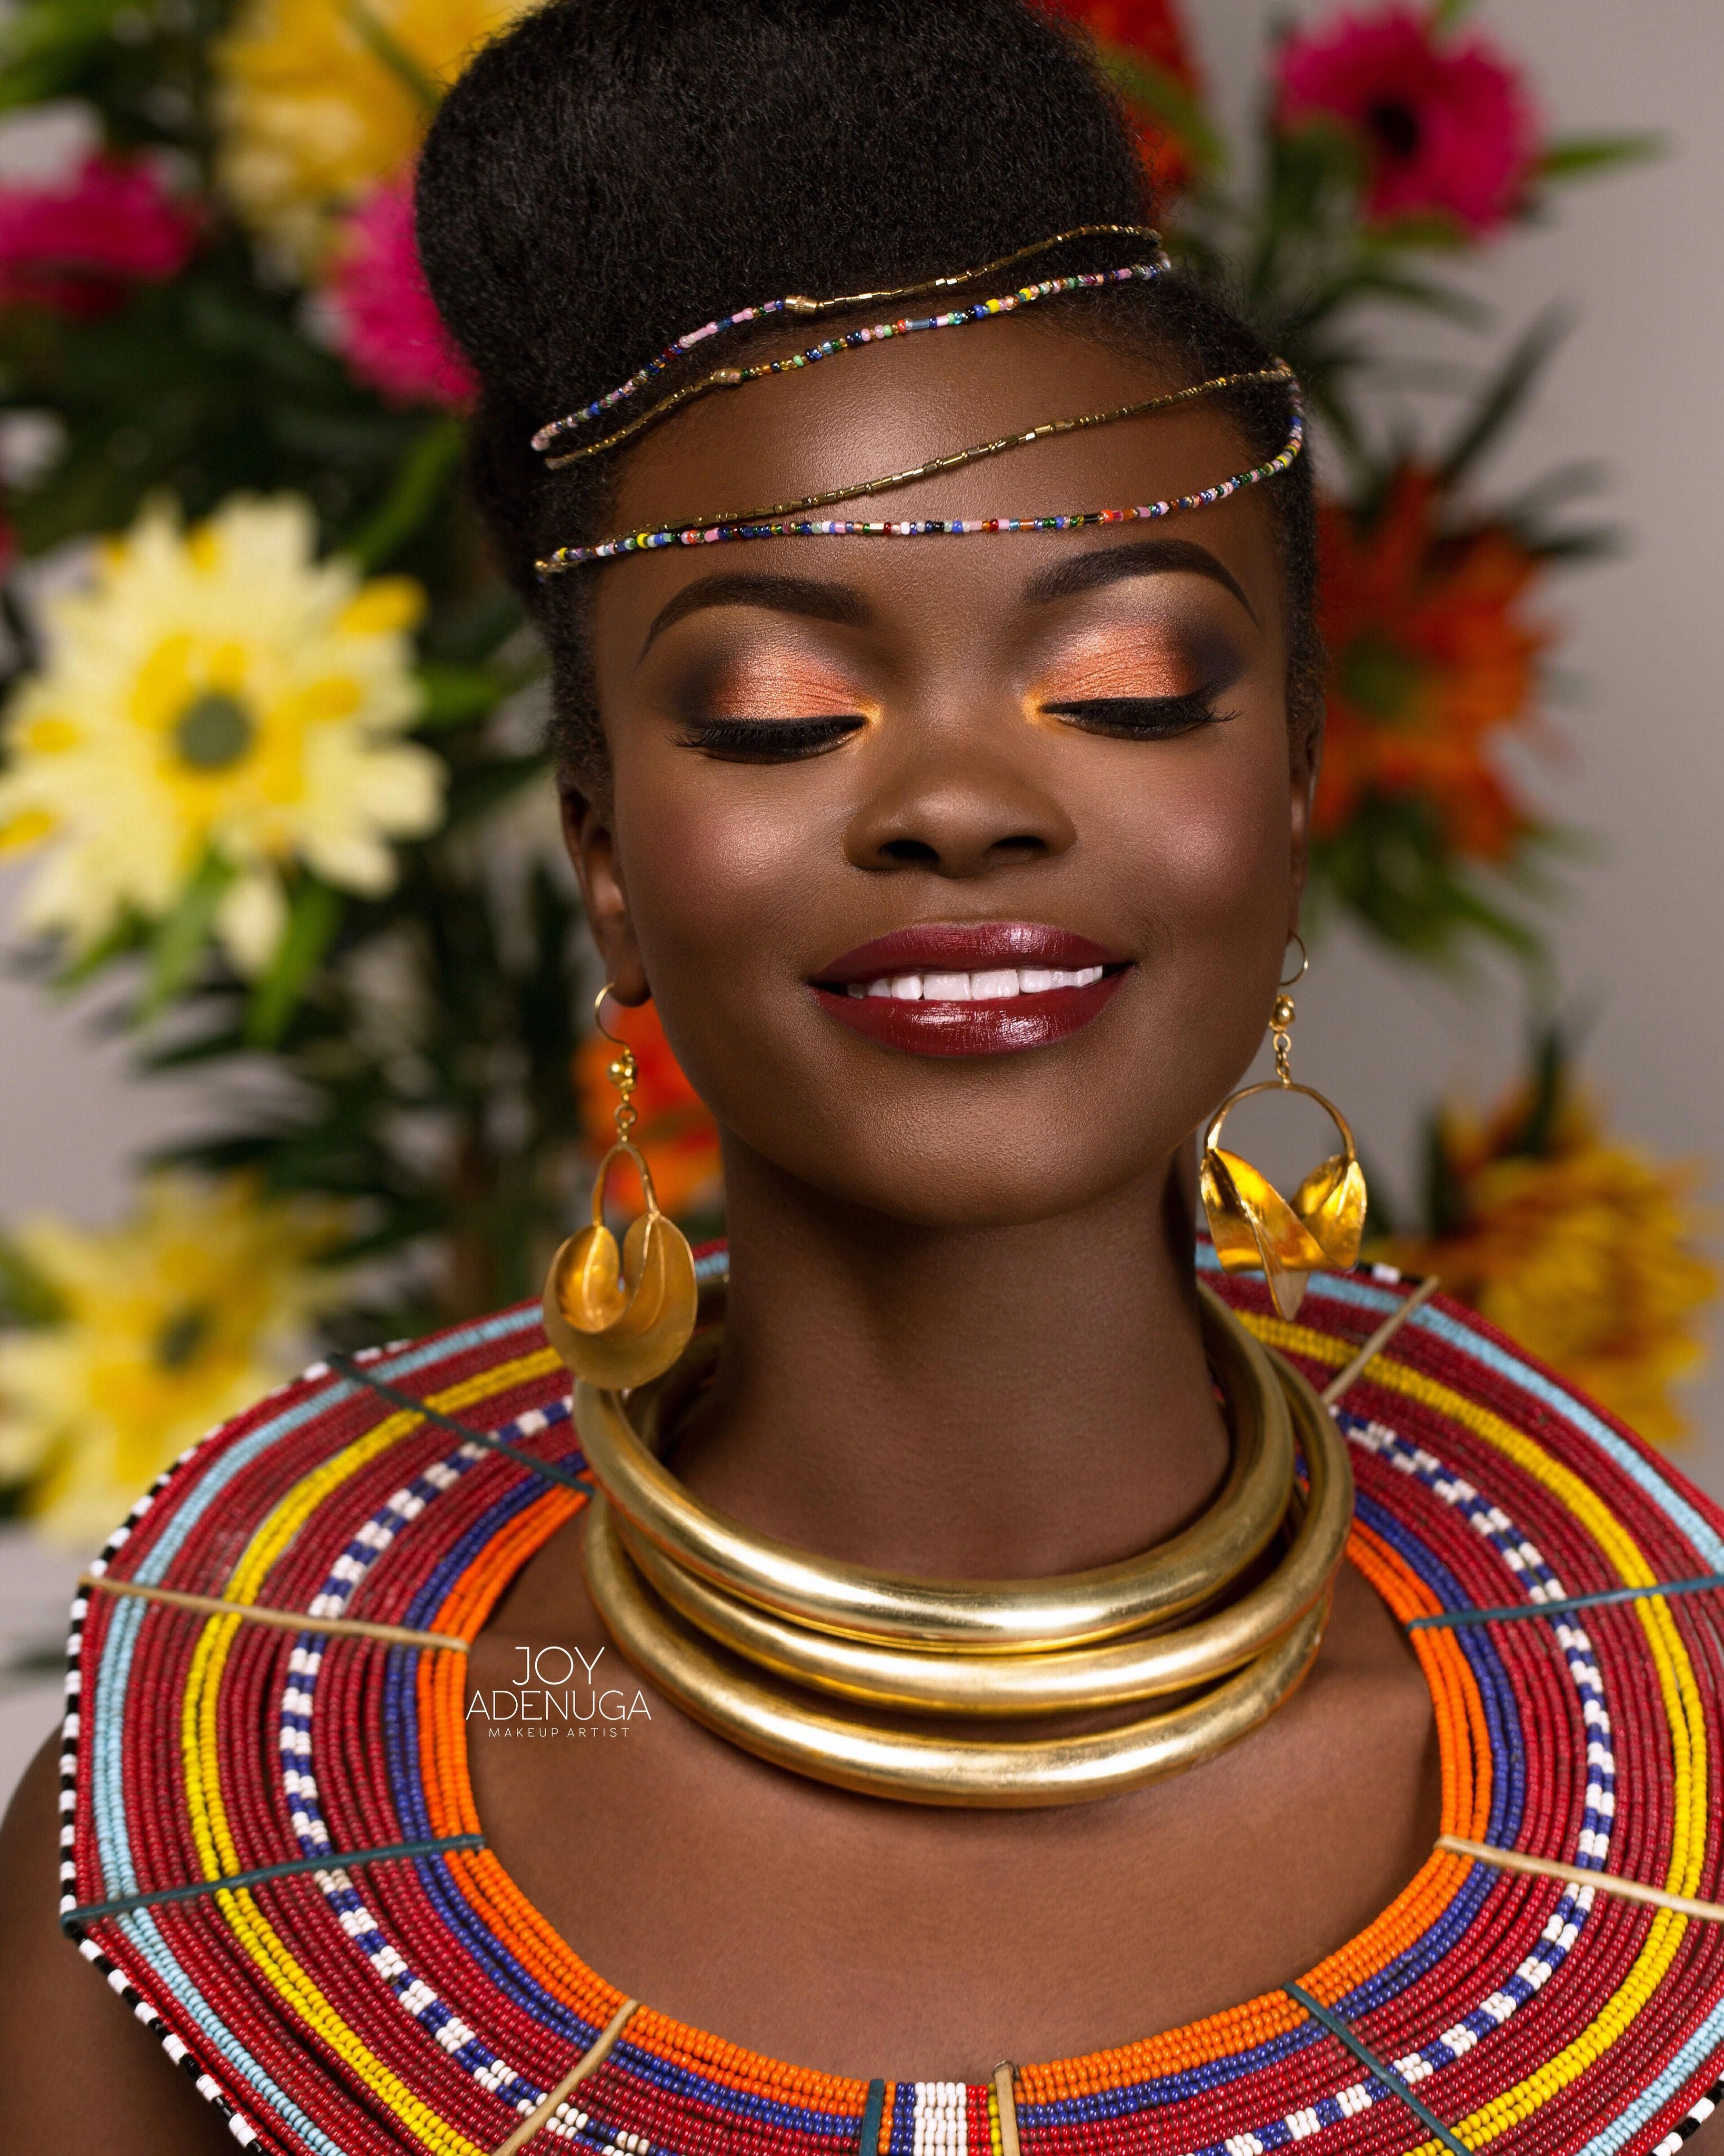 Muse image by Jamila Parker in 2020 African makeup